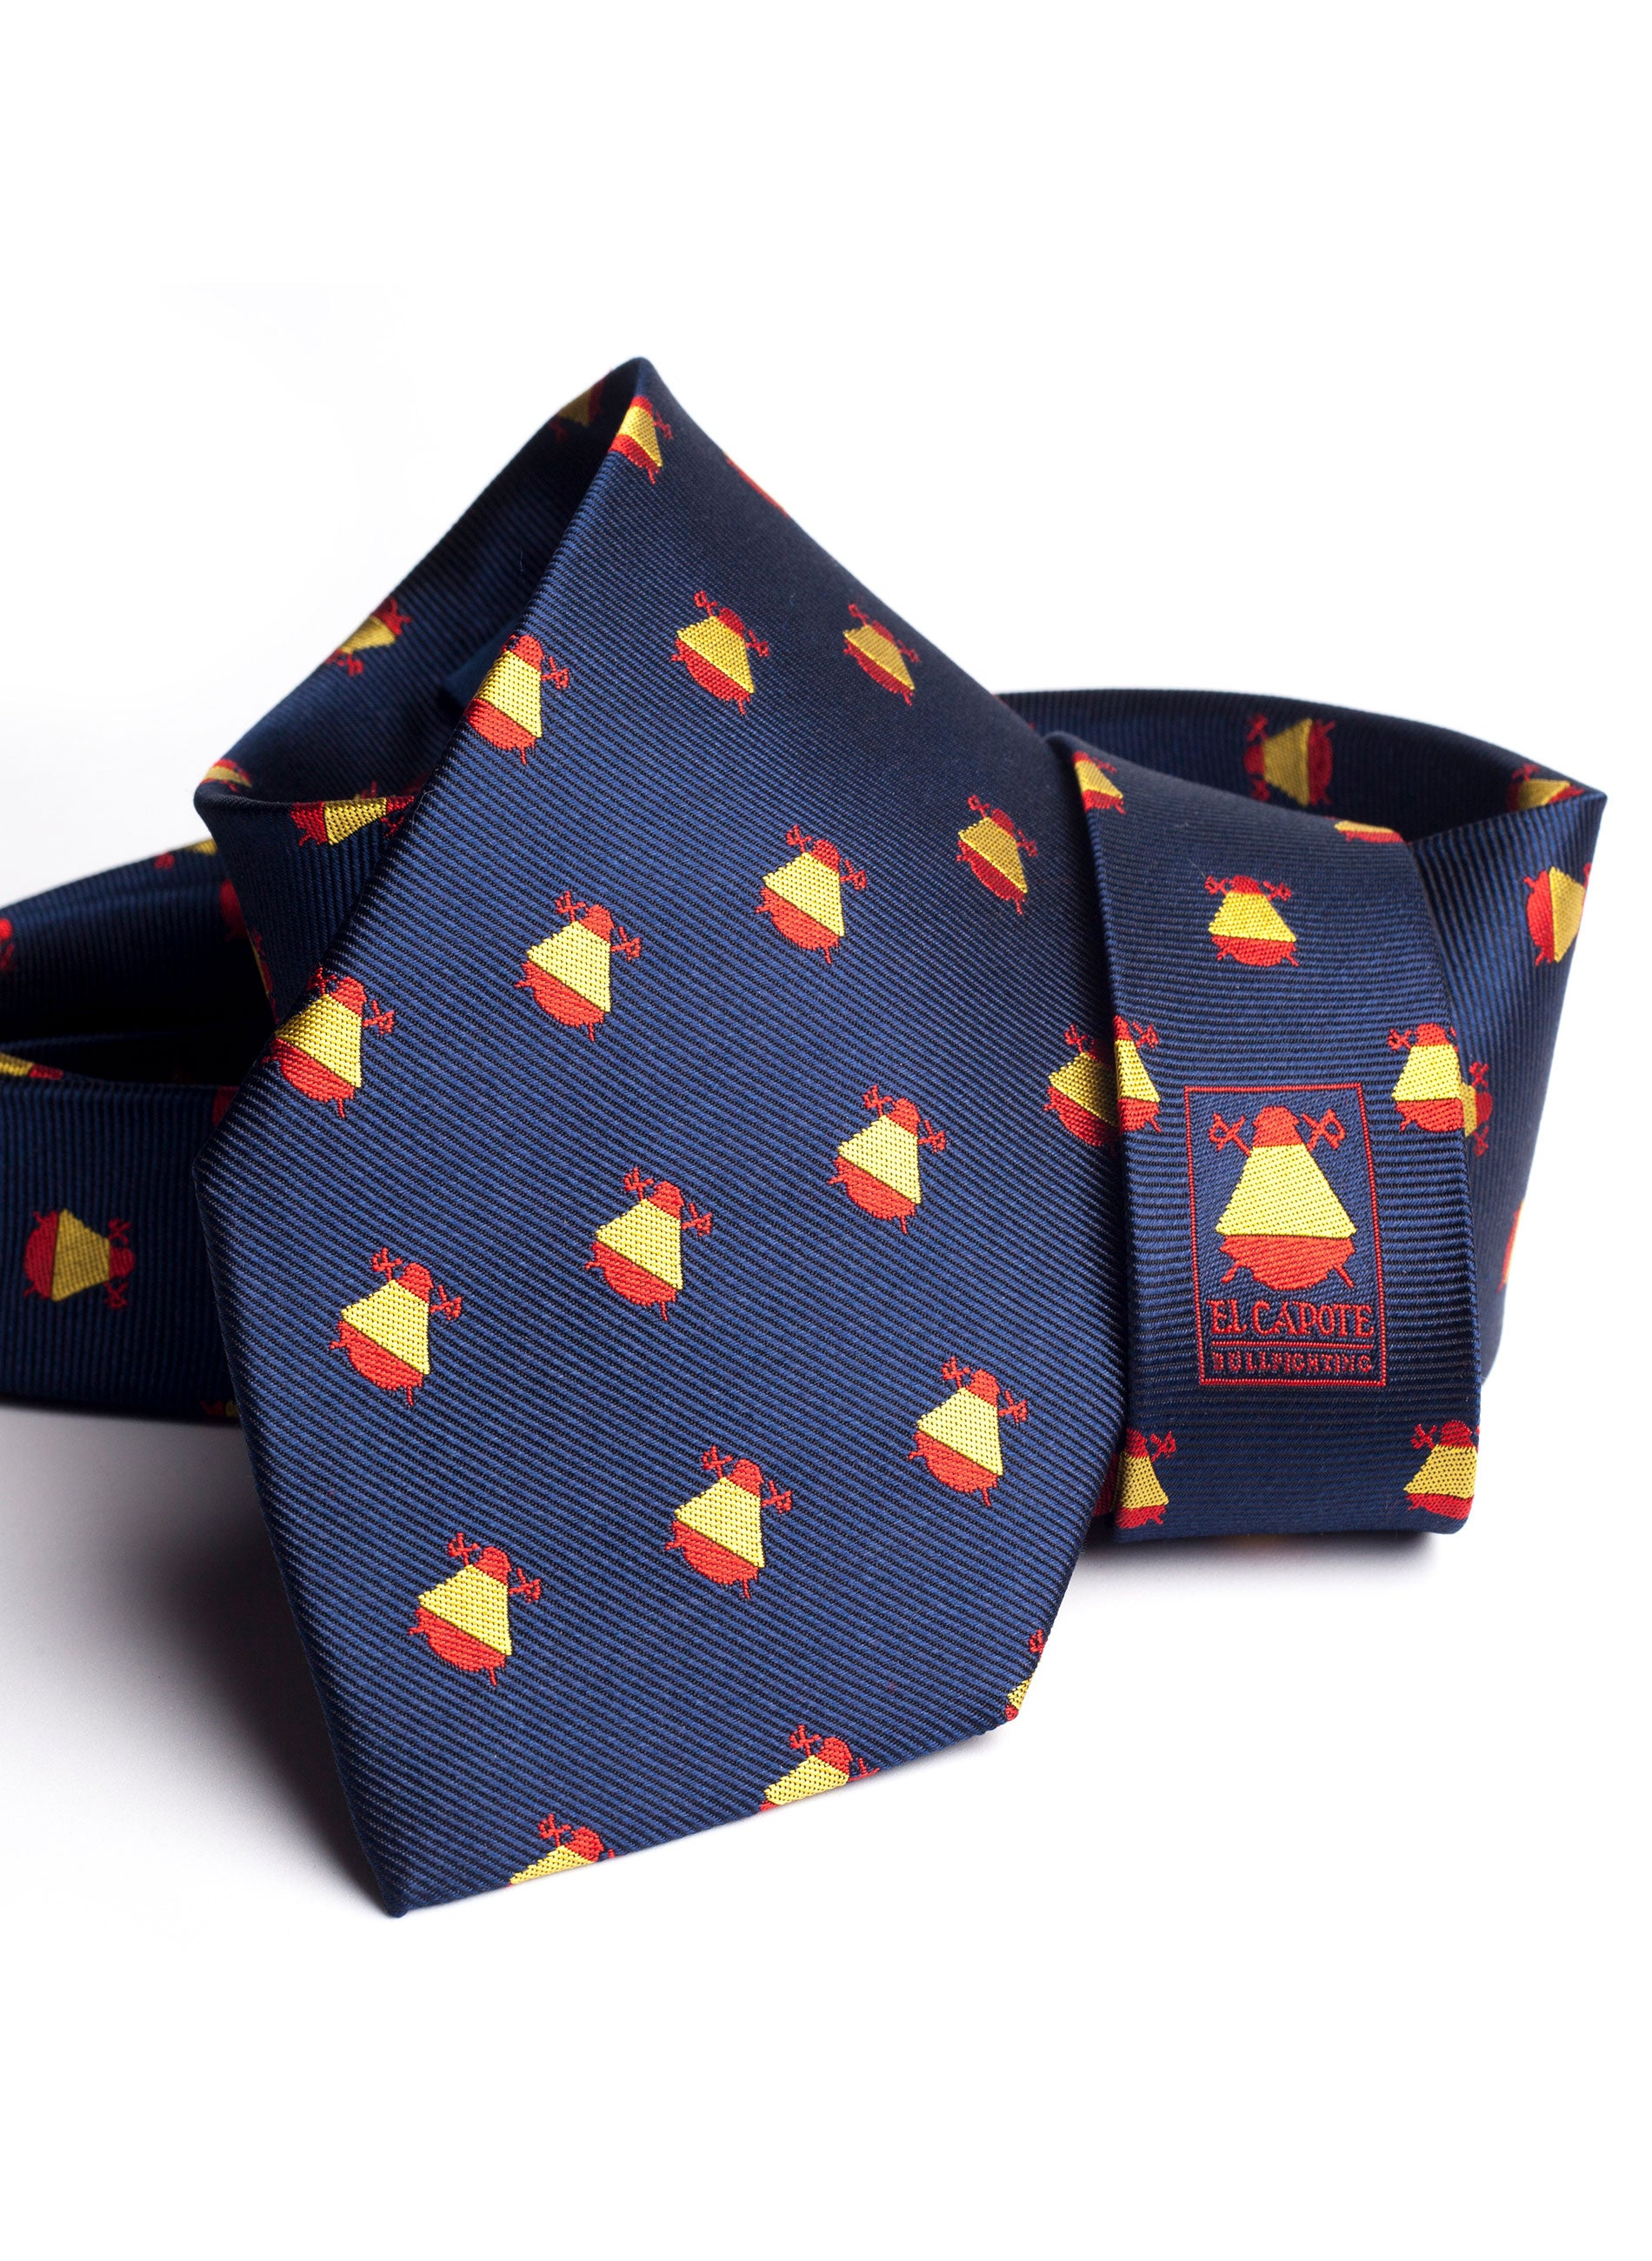 NAVY BLUE TIE SPAIN